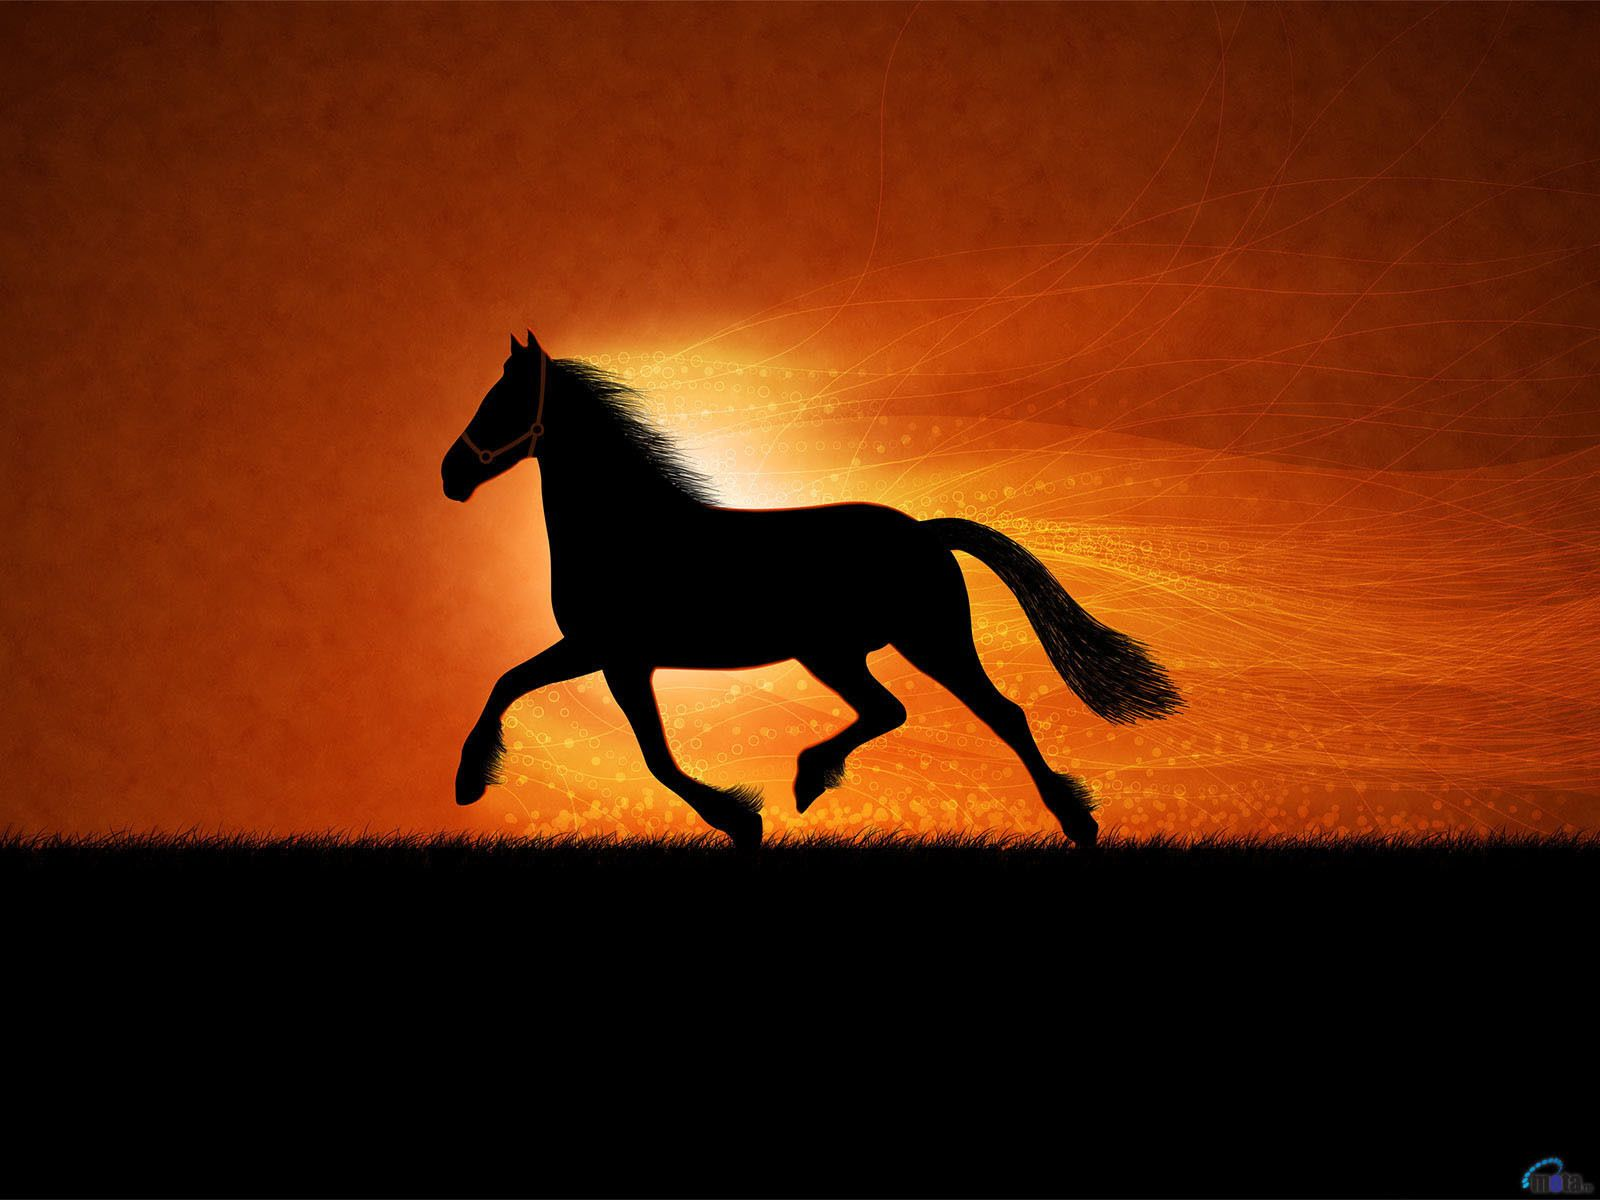 Horses Wallpaper More Horse Wallpapers Horse Wallpaper Horse Silhouette Horse Background